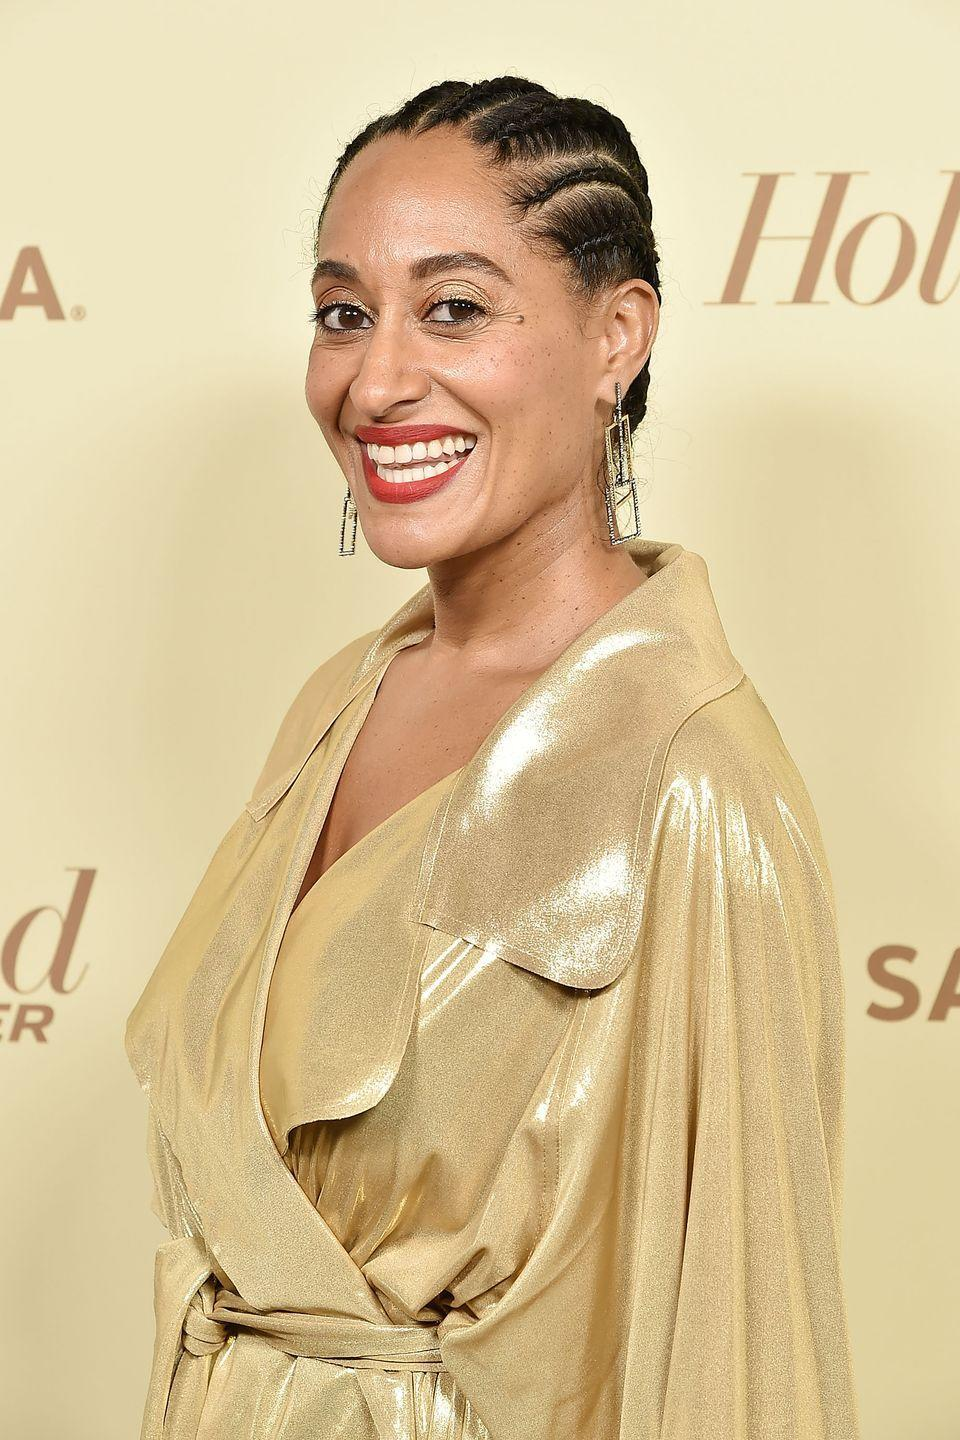 """<p>Short looks can be super versatile: Actress <strong>Tracee Ellis Ross</strong> knows a thing or two about easy, protective styles. Keep your <a href=""""https://www.goodhousekeeping.com/beauty/hair/g24751216/black-braided-hairstyles/"""" rel=""""nofollow noopener"""" target=""""_blank"""" data-ylk=""""slk:braided bun"""" class=""""link rapid-noclick-resp"""">braided bun</a> sleek and edges laid without the mess by using an edge control product like her own <u><a href=""""https://go.redirectingat.com?id=74968X1596630&url=https%3A%2F%2Fwww.ulta.com%2Fedge-control%3FproductId%3Dpimprod2016665&sref=https%3A%2F%2Fwww.goodhousekeeping.com%2Fbeauty%2Fhair%2Fg2471%2Fshort-black-hairstyles-ideas%2F"""" rel=""""nofollow noopener"""" target=""""_blank"""" data-ylk=""""slk:Pattern Edge Control"""" class=""""link rapid-noclick-resp"""">Pattern Edge Control</a>.</u></p><p><a class=""""link rapid-noclick-resp"""" href=""""https://go.redirectingat.com?id=74968X1596630&url=https%3A%2F%2Fwww.ulta.com%2Fedge-control%3FproductId%3Dpimprod2016665&sref=https%3A%2F%2Fwww.goodhousekeeping.com%2Fbeauty%2Fhair%2Fg2471%2Fshort-black-hairstyles-ideas%2F"""" rel=""""nofollow noopener"""" target=""""_blank"""" data-ylk=""""slk:SHOP EDGE CONTROL"""">SHOP EDGE CONTROL</a></p>"""